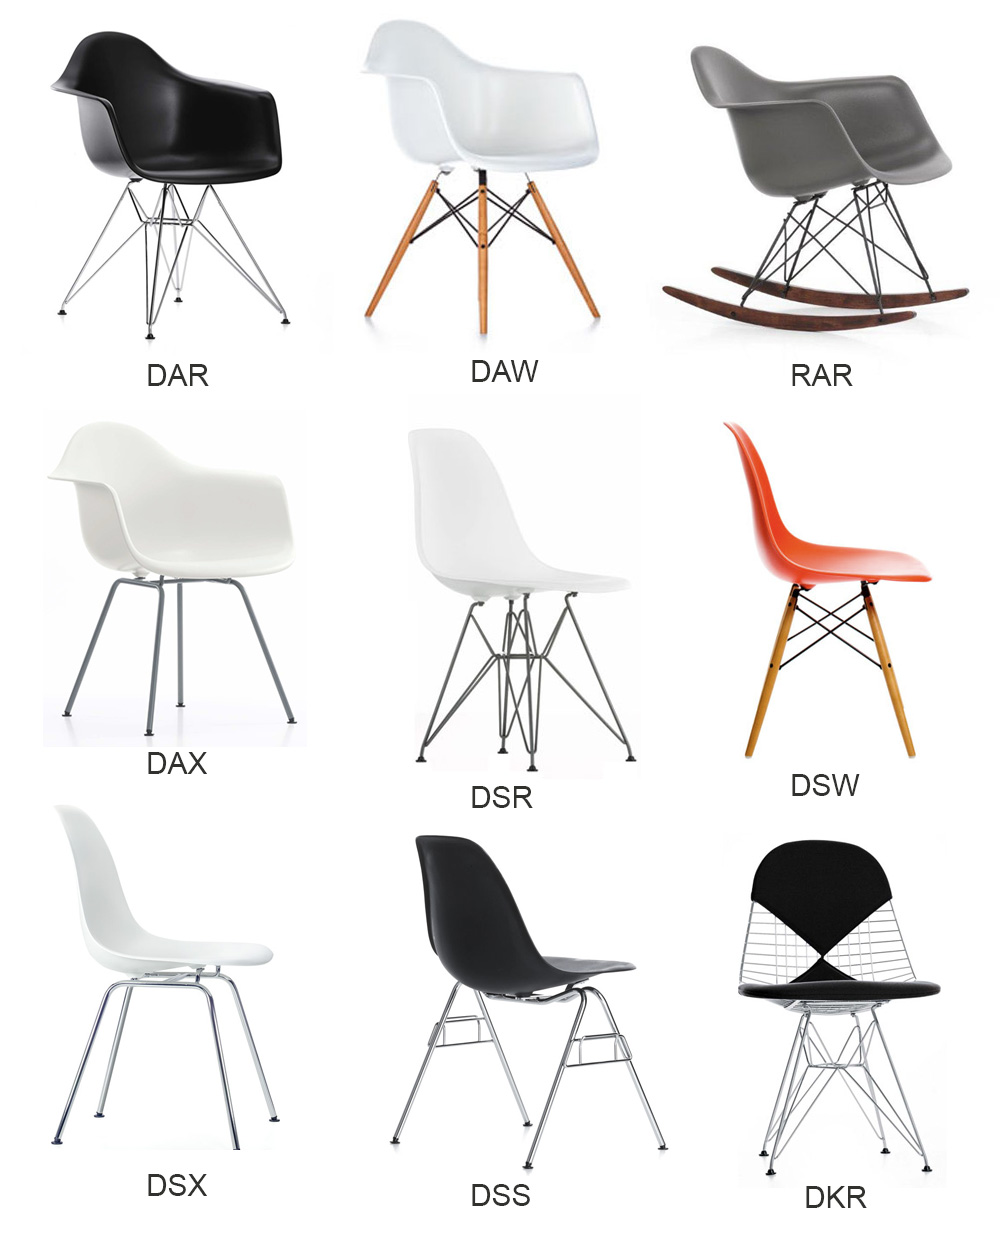 noms des mod les de chaises eames. Black Bedroom Furniture Sets. Home Design Ideas